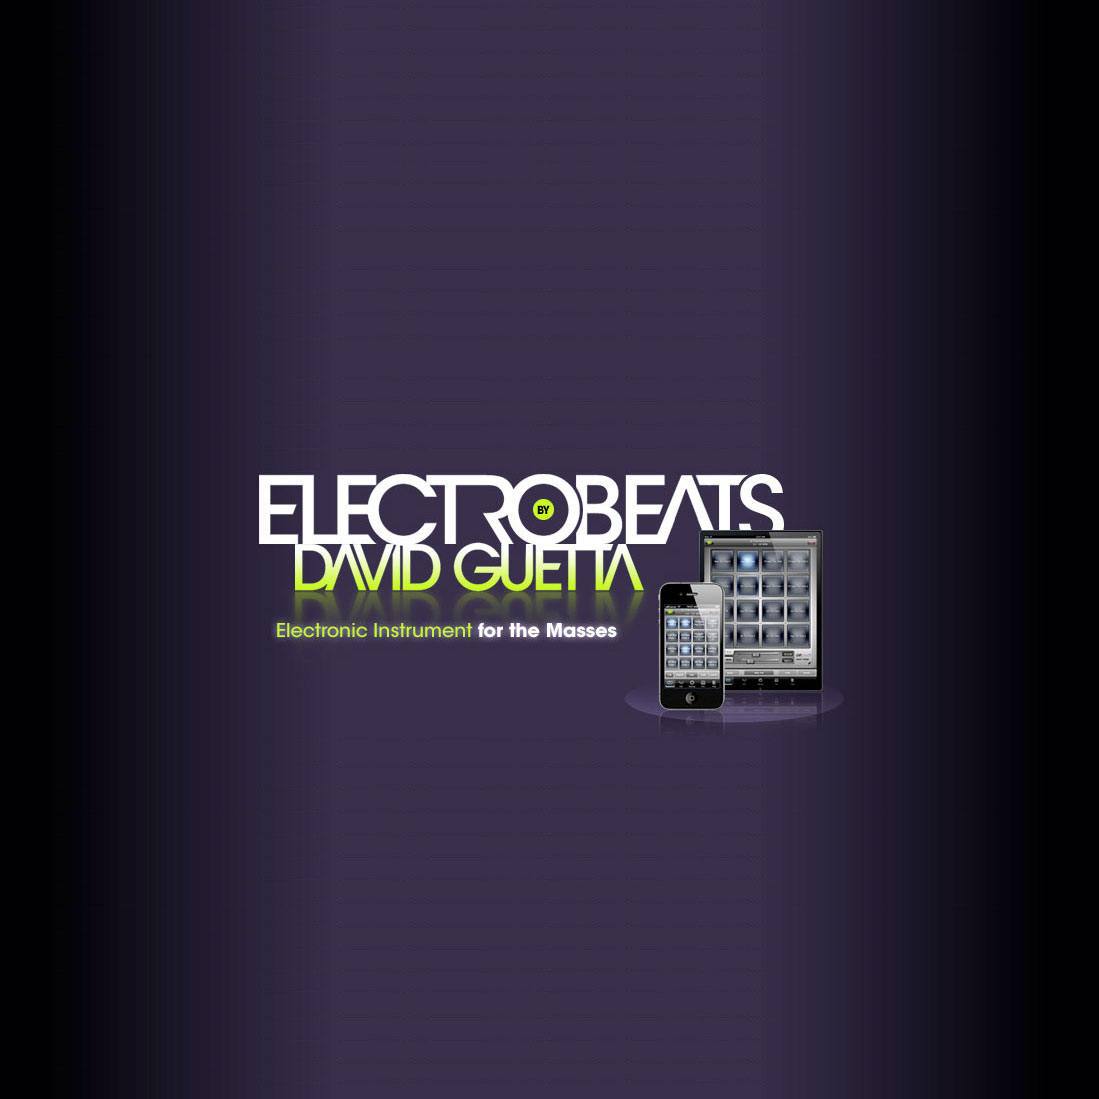 UVI Releases ElectroBeats By David Guetta App